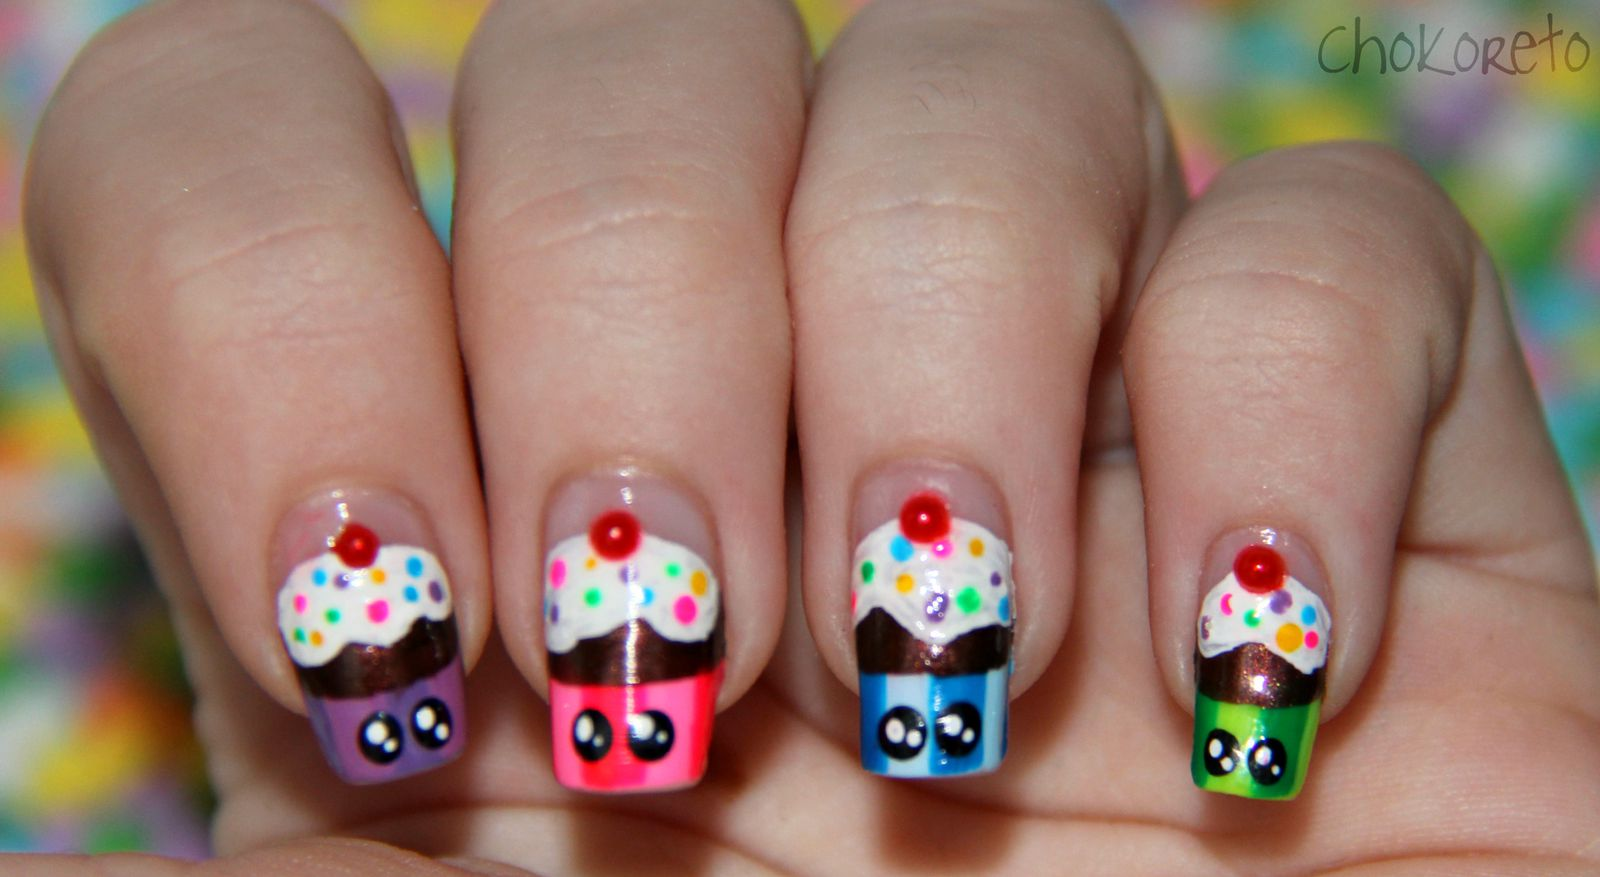 Nail art candies of the partiesholidays girly corset candy nail art3 2845 prinsesfo Image collections